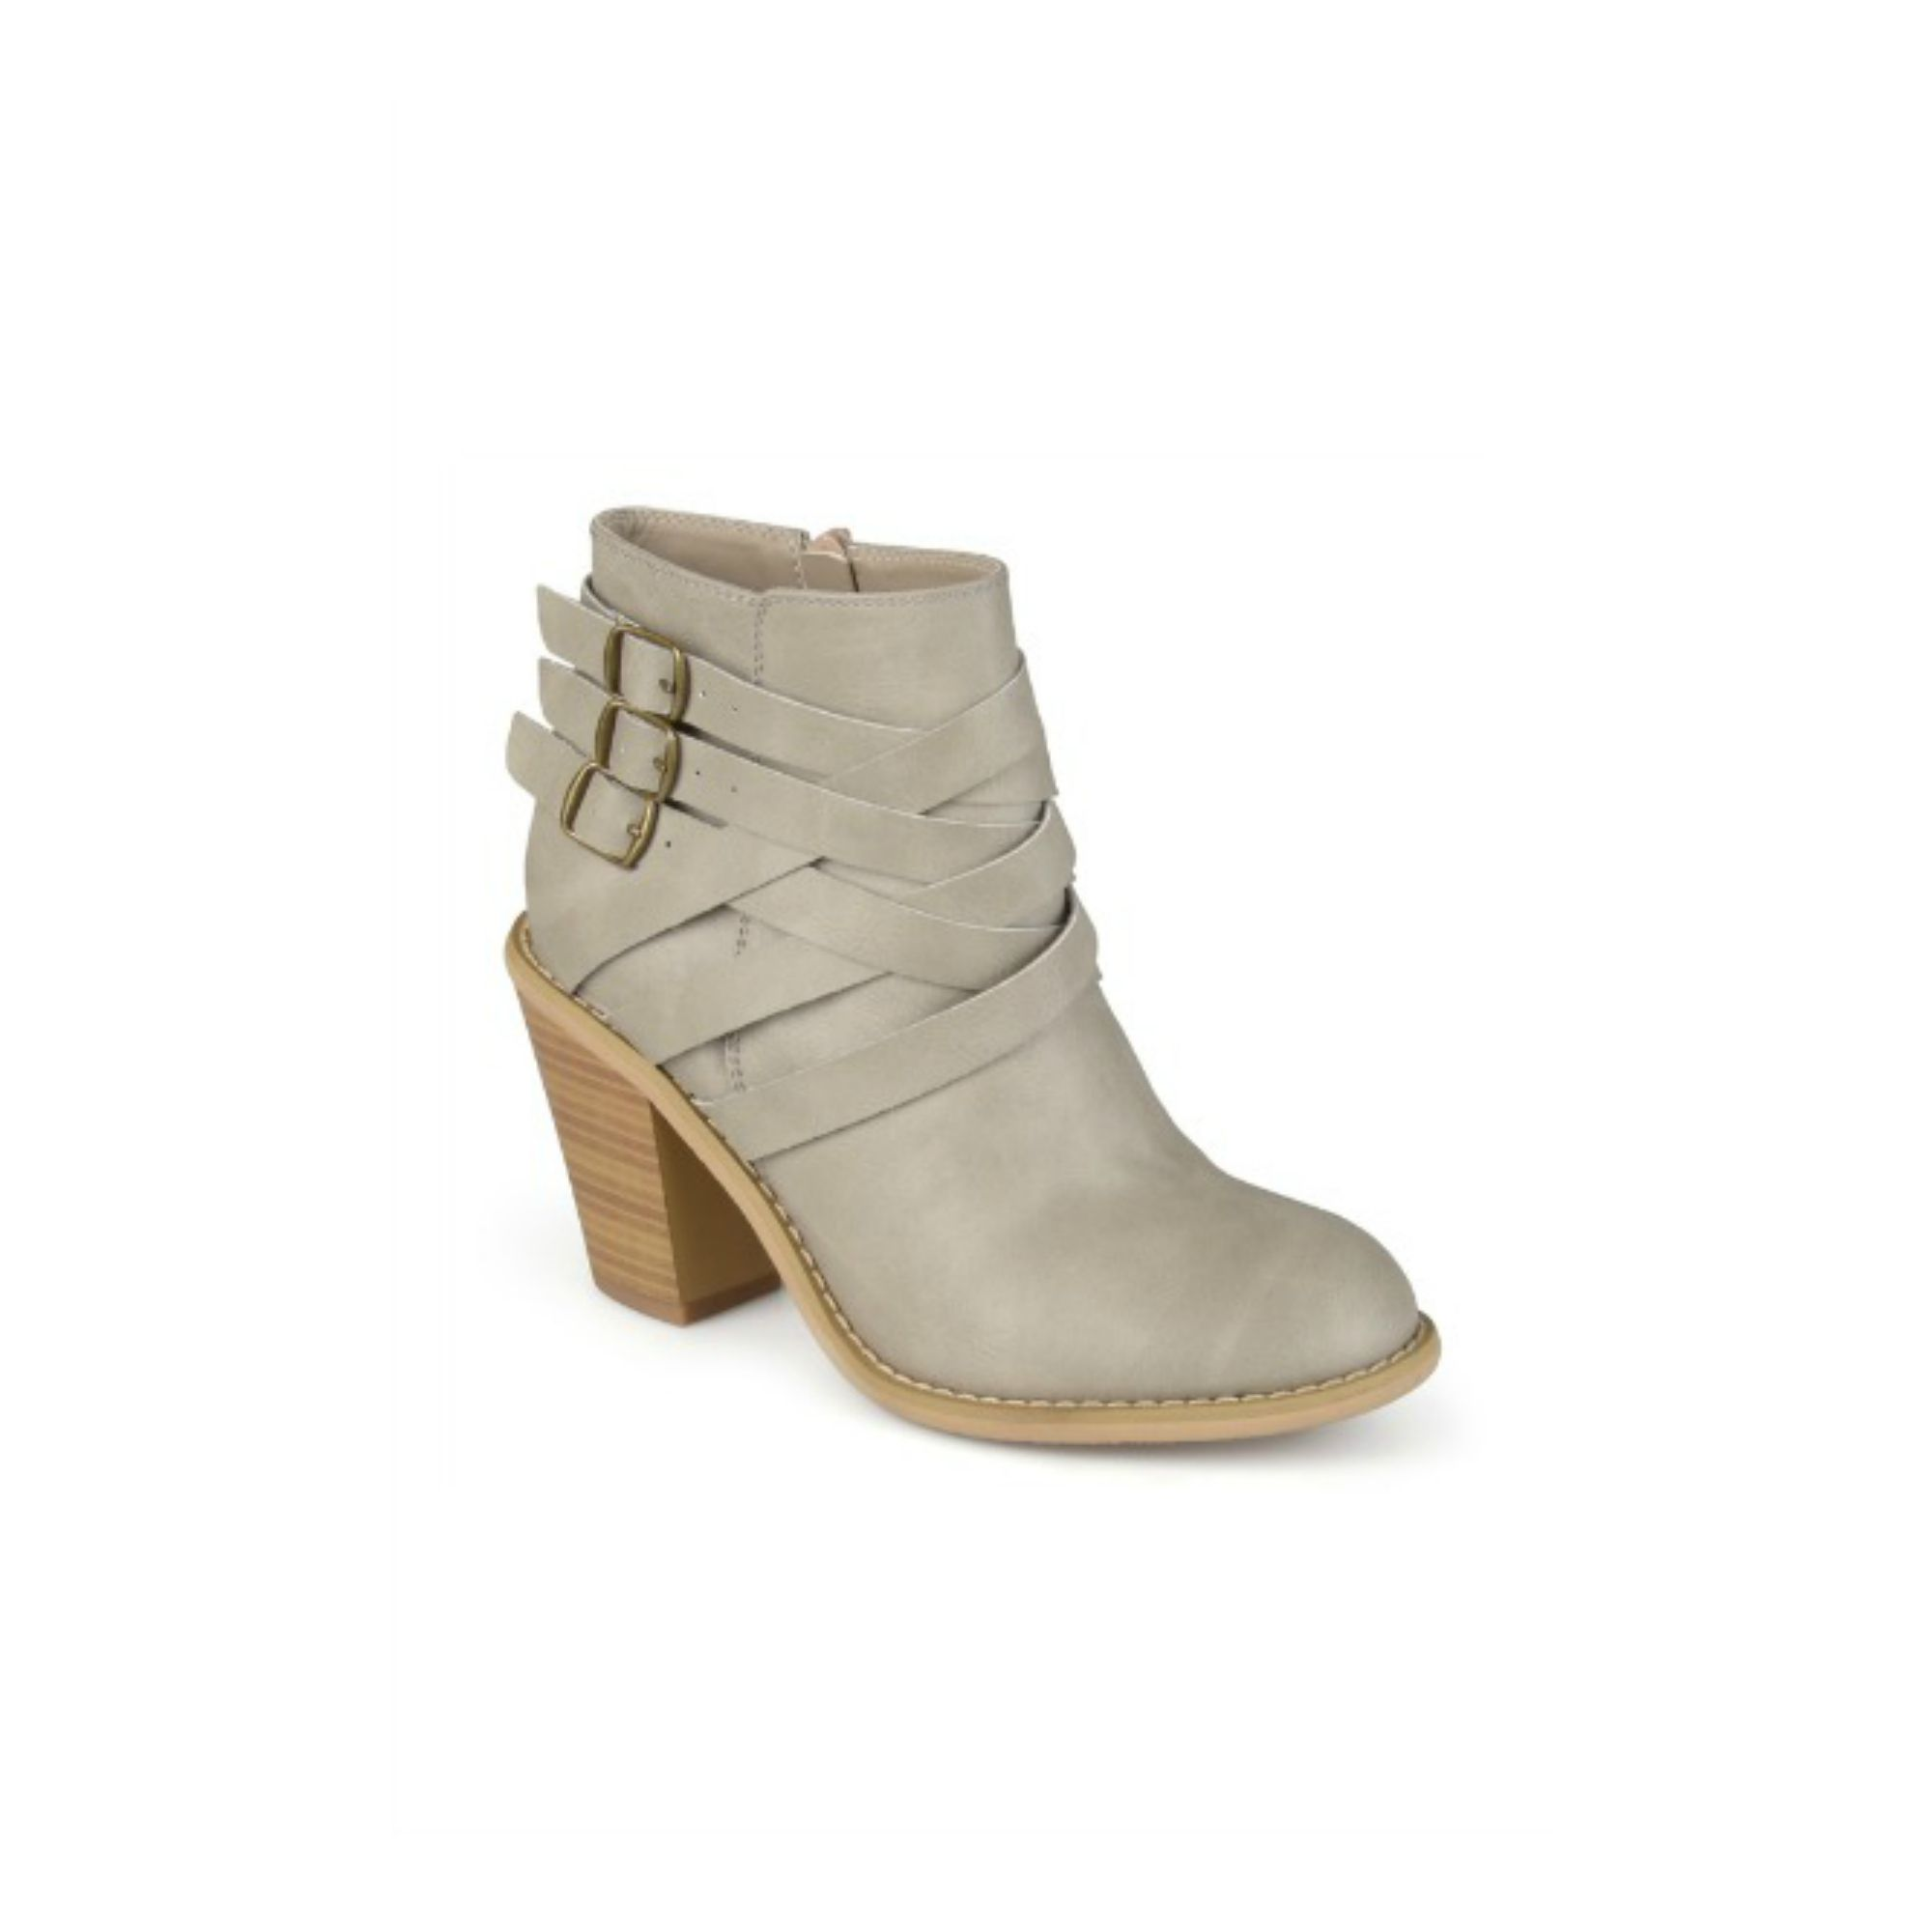 buckle knee with double booties over herstyle comfortable riding for walking comforter tense om zipper the boots detail black